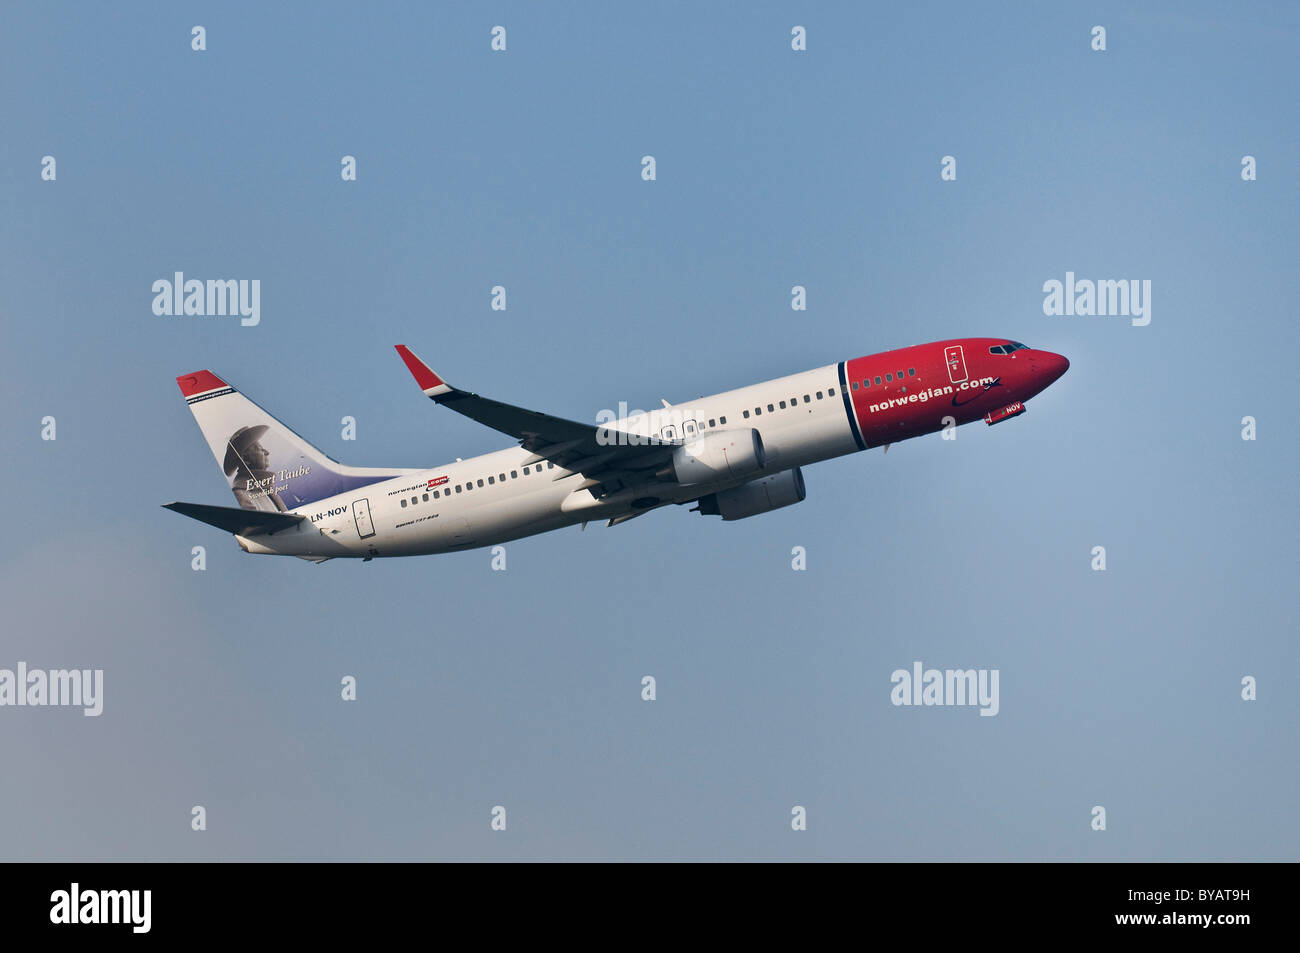 Norwegian Air Shuttle Boeing 737-8FZ, Passagierflugzeug, Klettern Stockbild